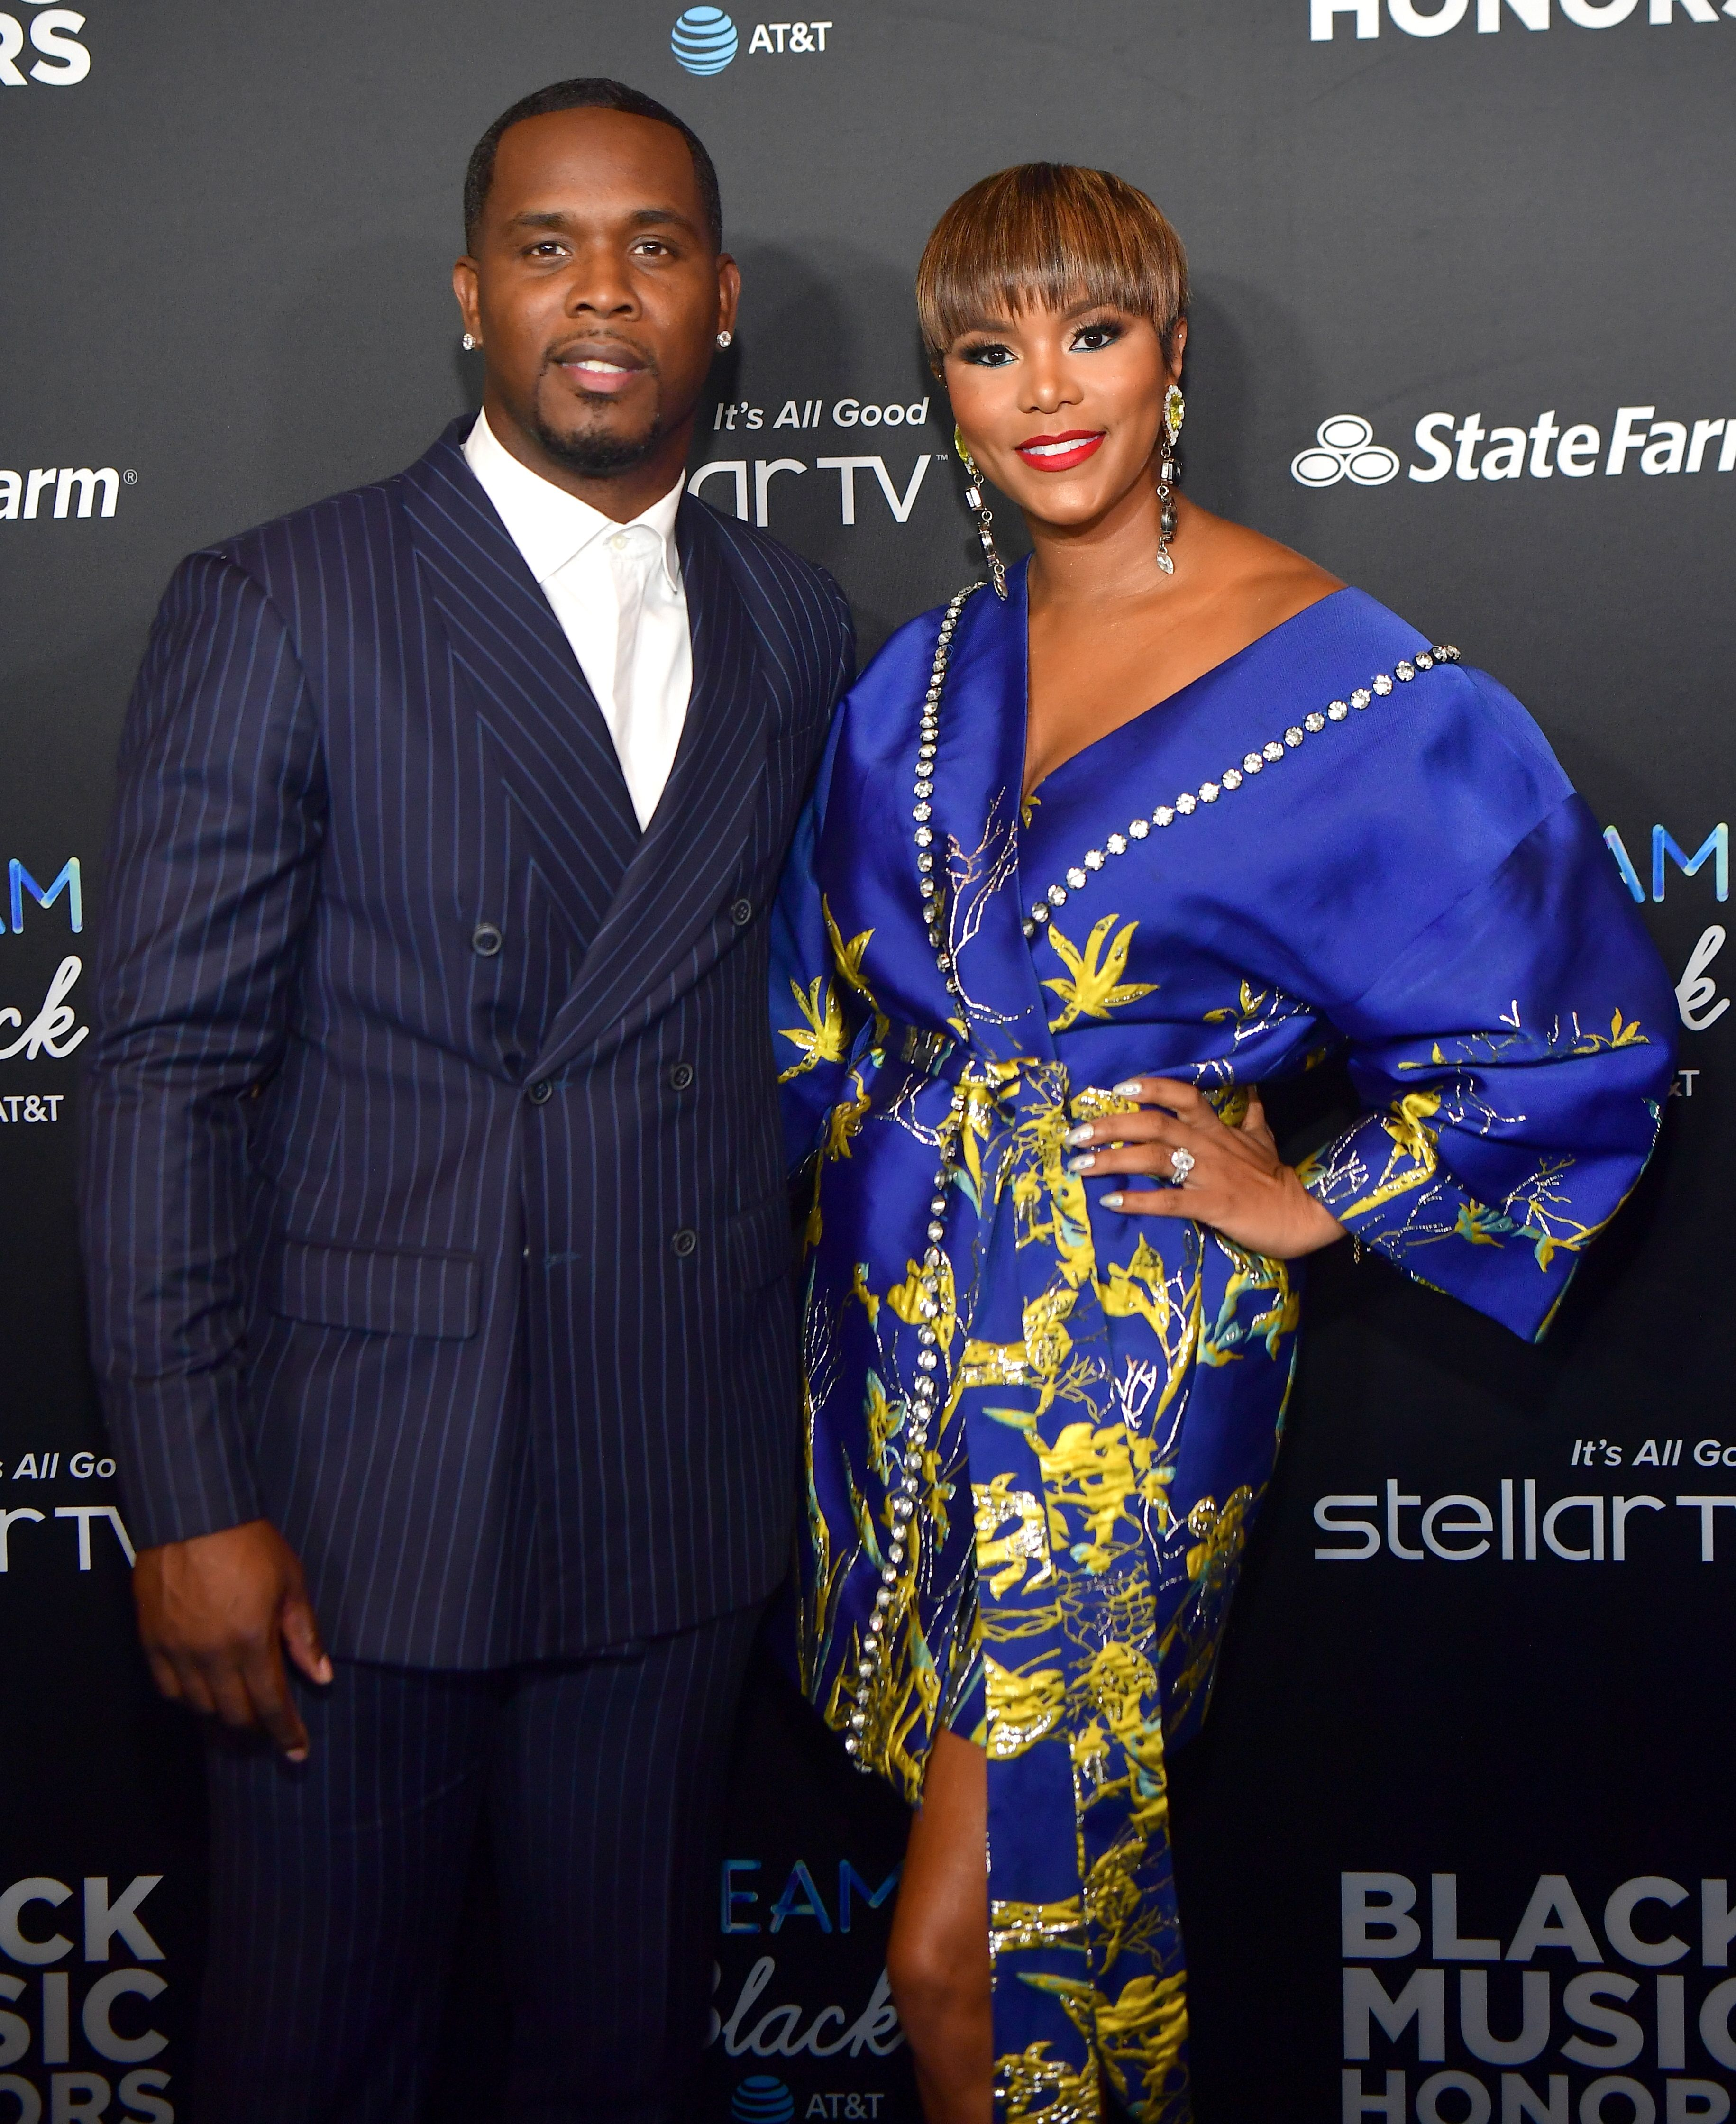 Tommicus Walker and LeToya Luckett-Walker during the 2019 Black Music Honors - Arrivals at Cobb Energy Performing Arts Center on September 5, 2019 in Atlanta, Georgia. | Source: Getty Images